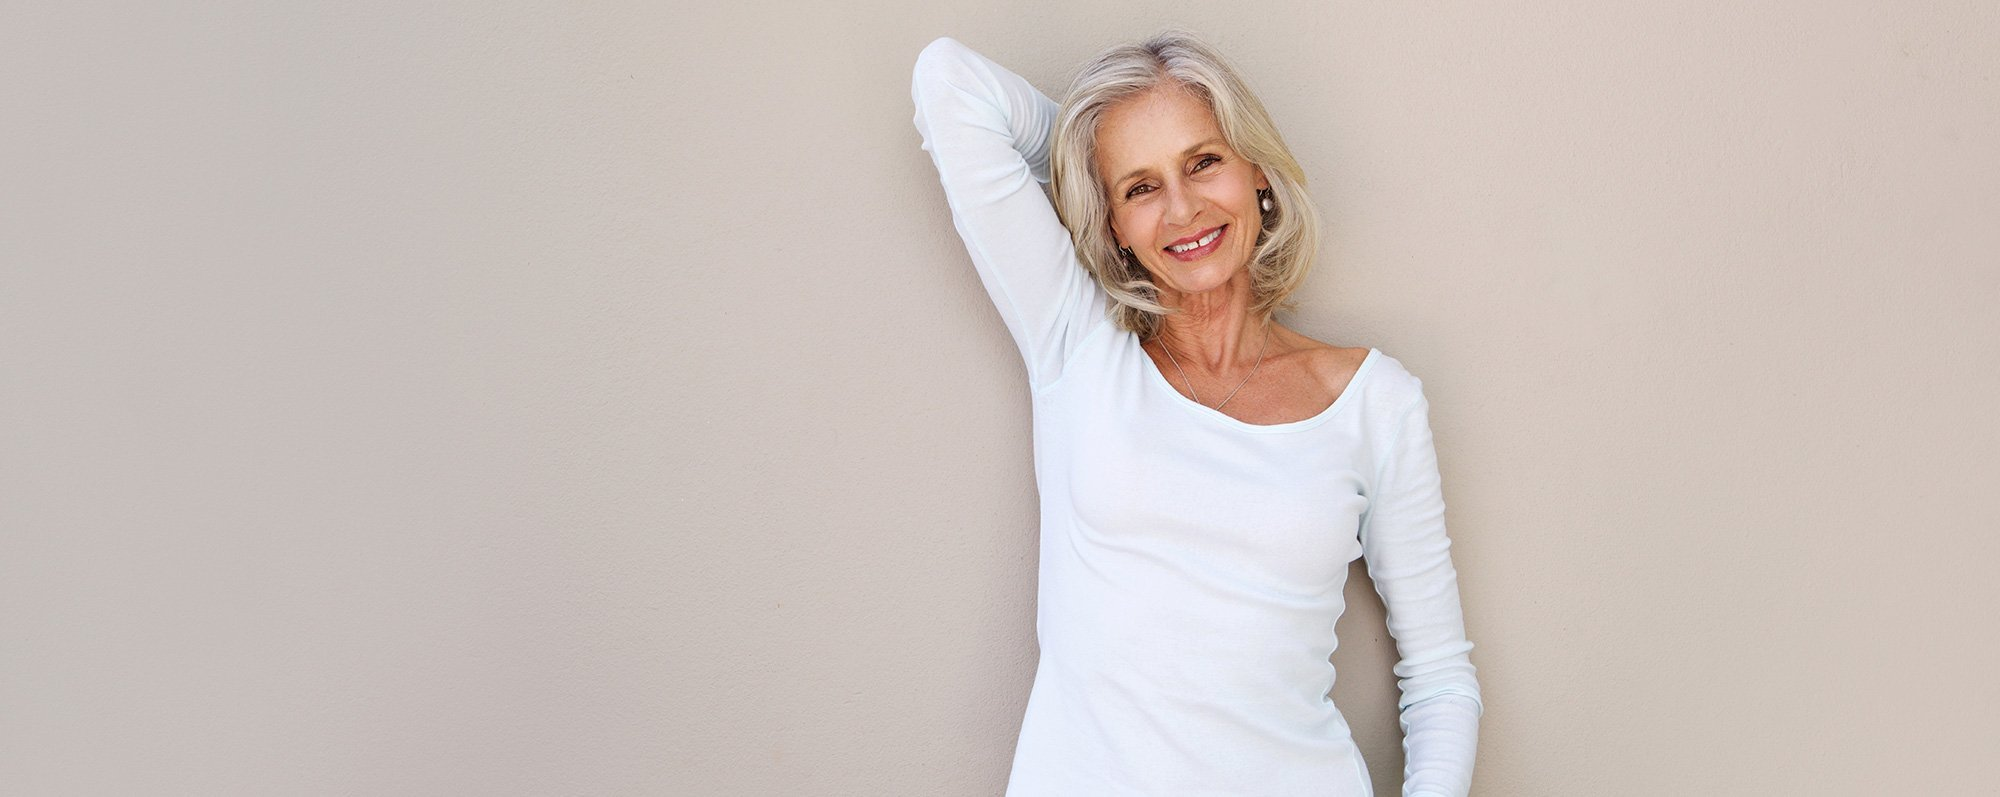 MUSCLE LOSS IN OLD AGE – SARCOPENIA